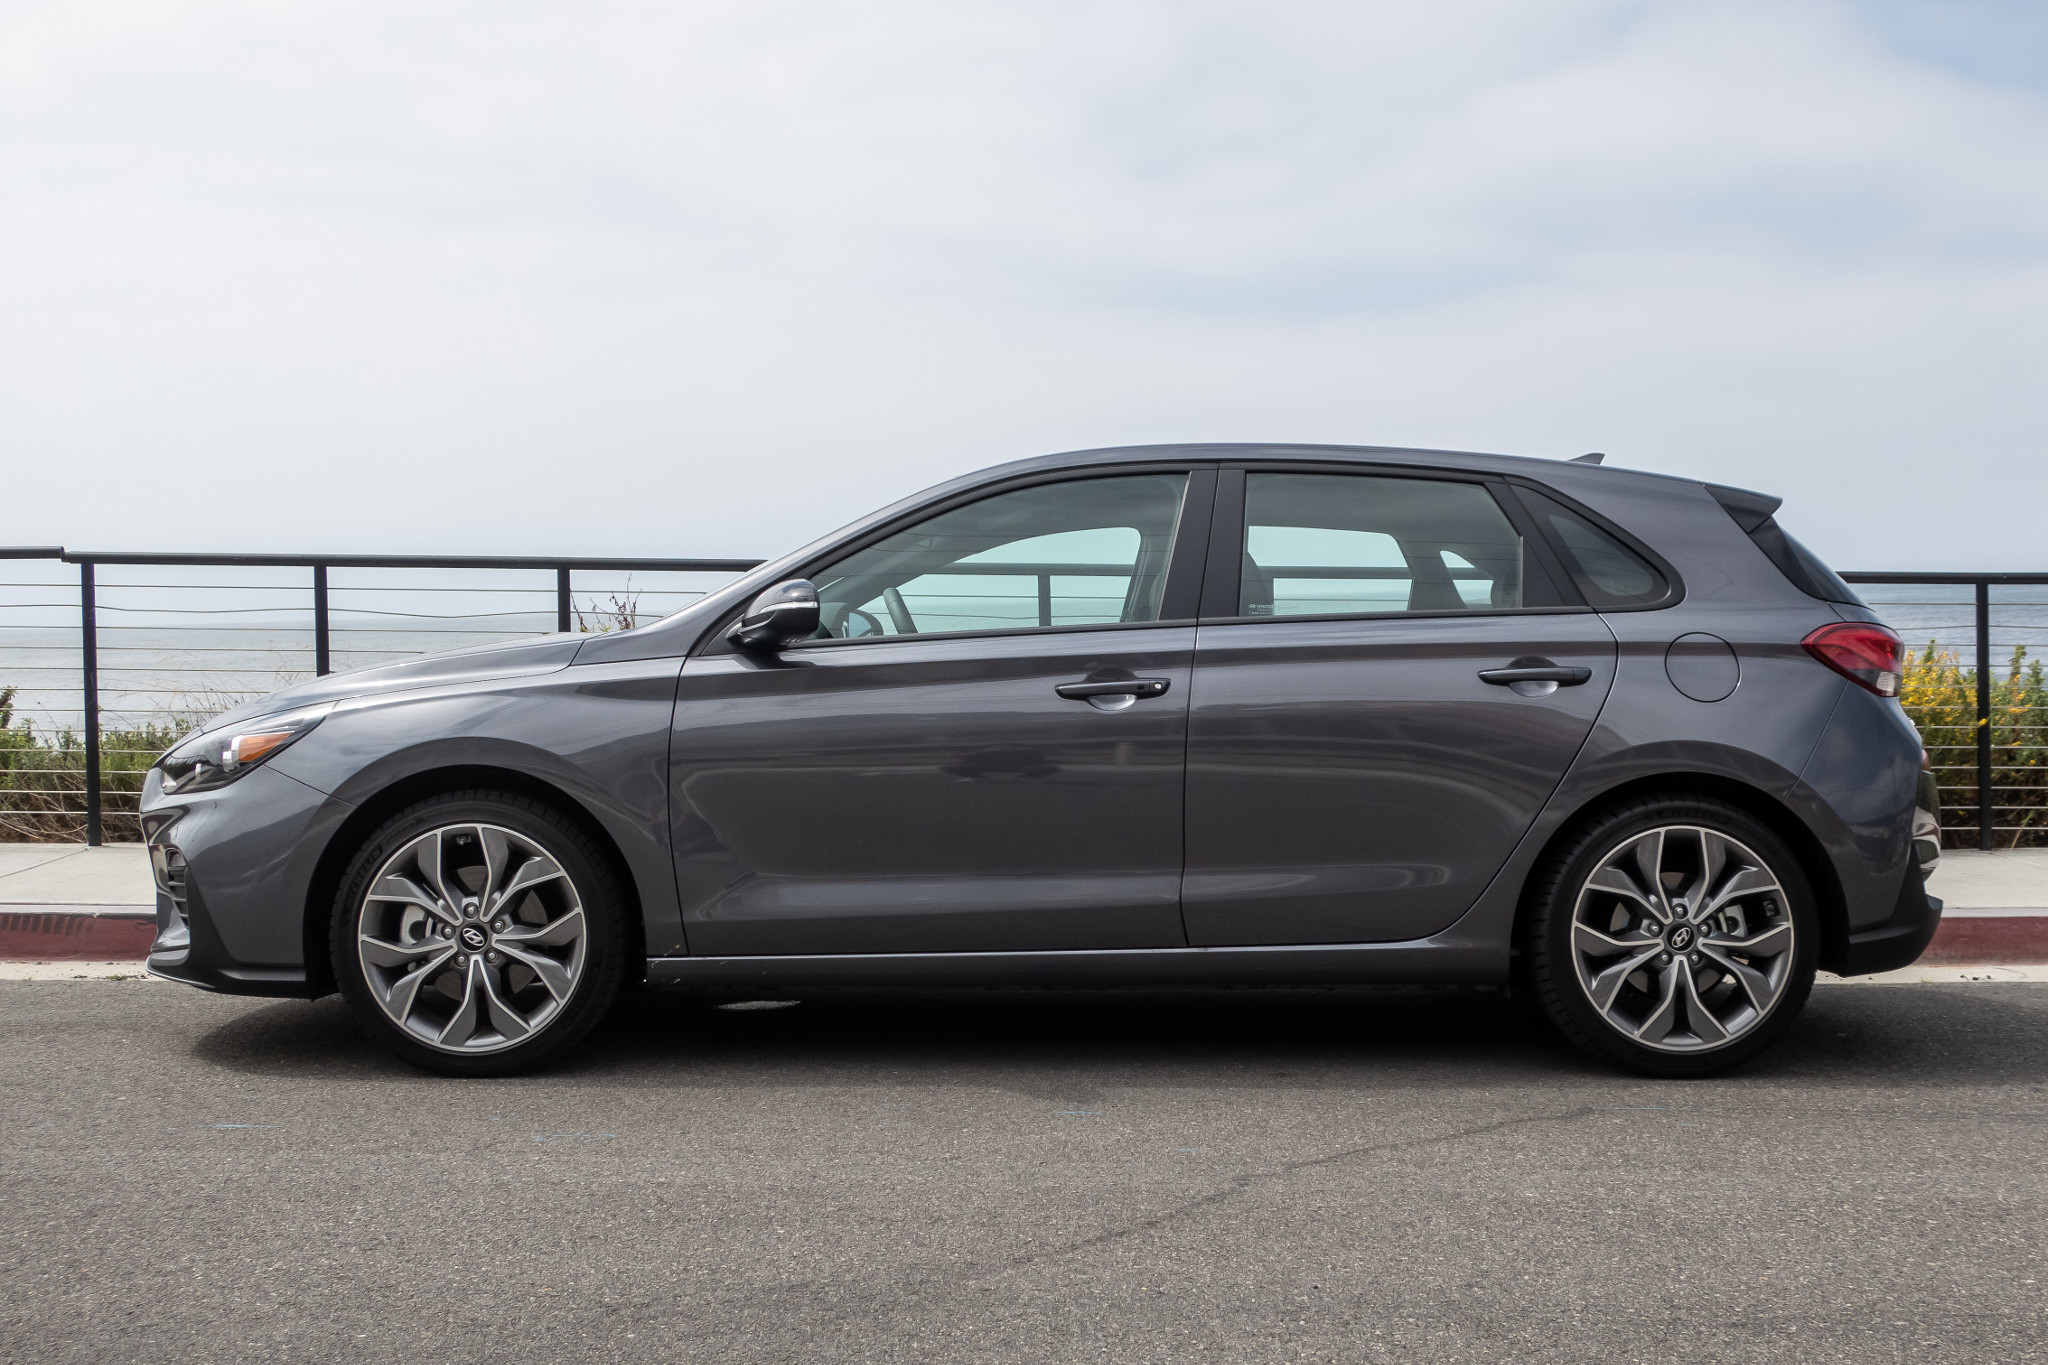 2019 Hyundai Elantra GT N-Line Quick Spin: Looks Can Be